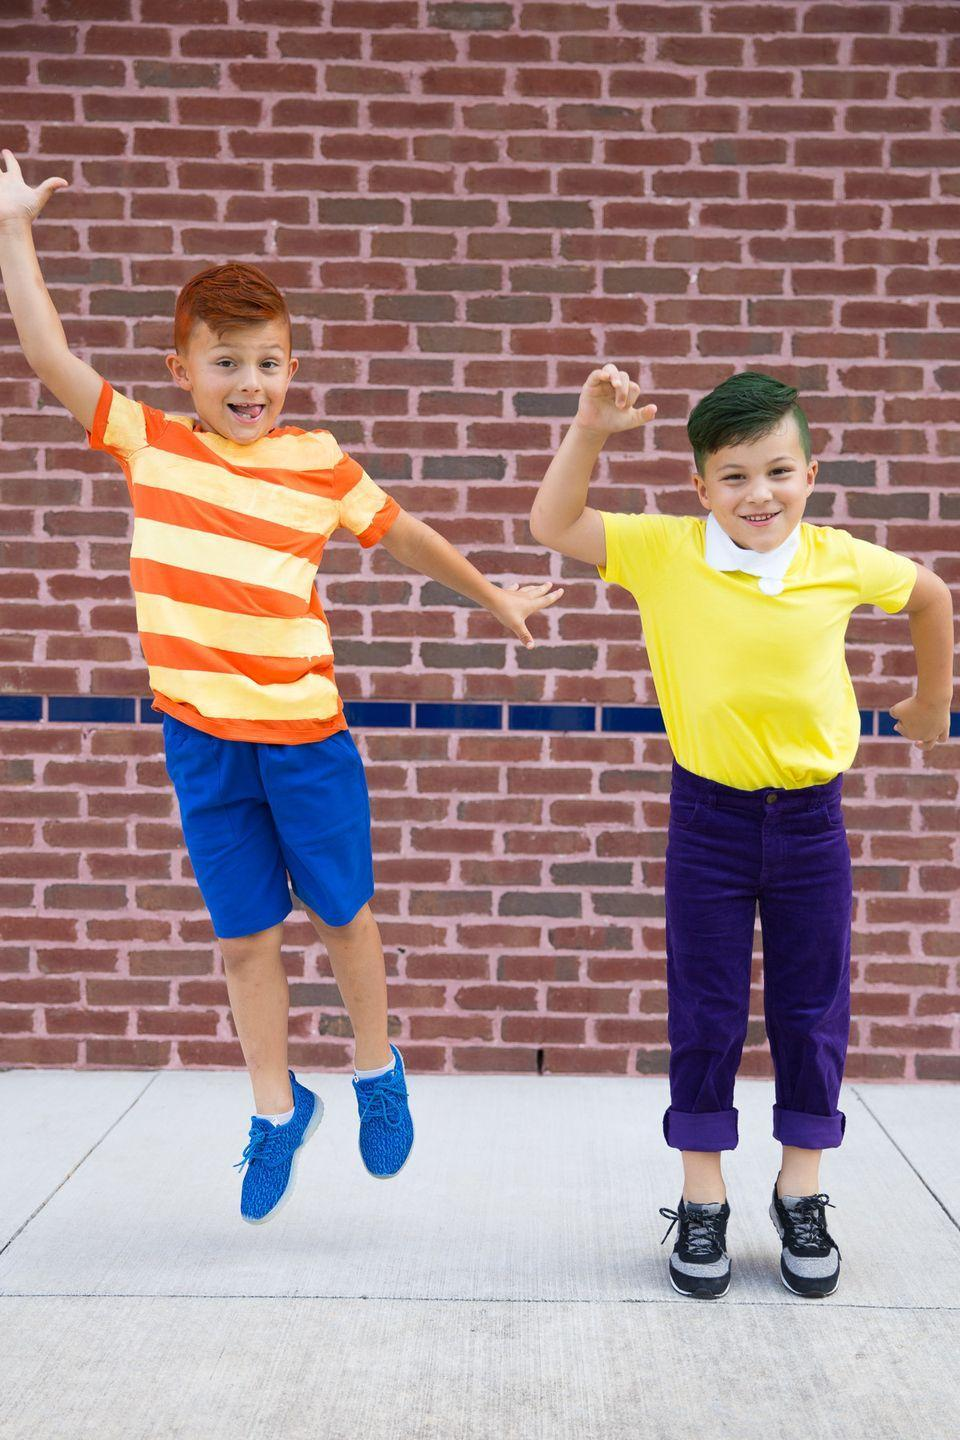 """<p>Halloween doesn't last 104 days (we wish), but with hair dye and colorful costumes, your kids can still get up to some outlandish holiday shenanigans just like Phineas and Ferb.</p><p><a class=""""link rapid-noclick-resp"""" href=""""https://www.amazon.com/LOreal-Paris-Color-Colorista-1-Day/dp/B074K7Z3FN/?tag=syn-yahoo-20&ascsubtag=%5Bartid%7C10055.g.29516206%5Bsrc%7Cyahoo-us"""" rel=""""nofollow noopener"""" target=""""_blank"""" data-ylk=""""slk:SHOP TEMPORARY HAIR DYE"""">SHOP TEMPORARY HAIR DYE</a></p><p><em><a href=""""http://www.taylormadecreates.com/2017/10/phineas-ferb-costume.html"""" rel=""""nofollow noopener"""" target=""""_blank"""" data-ylk=""""slk:Get the tutorial at Taylor Made Creates »"""" class=""""link rapid-noclick-resp"""">Get the tutorial at Taylor Made Creates »</a></em></p>"""